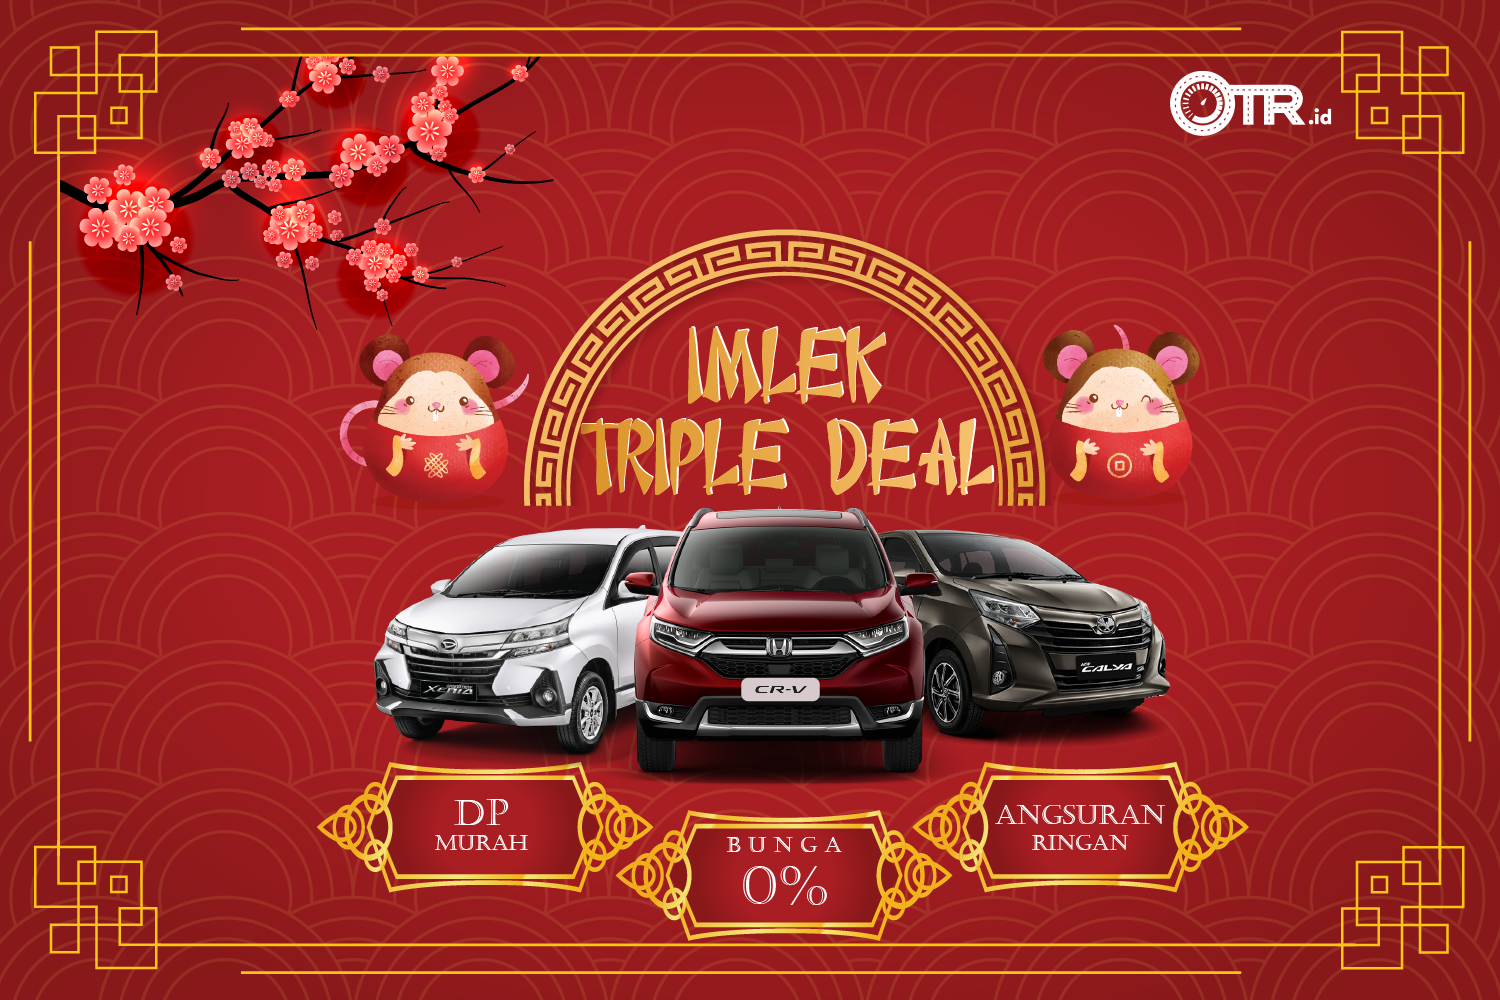 Promo Imlek Triple Deal OTR.id